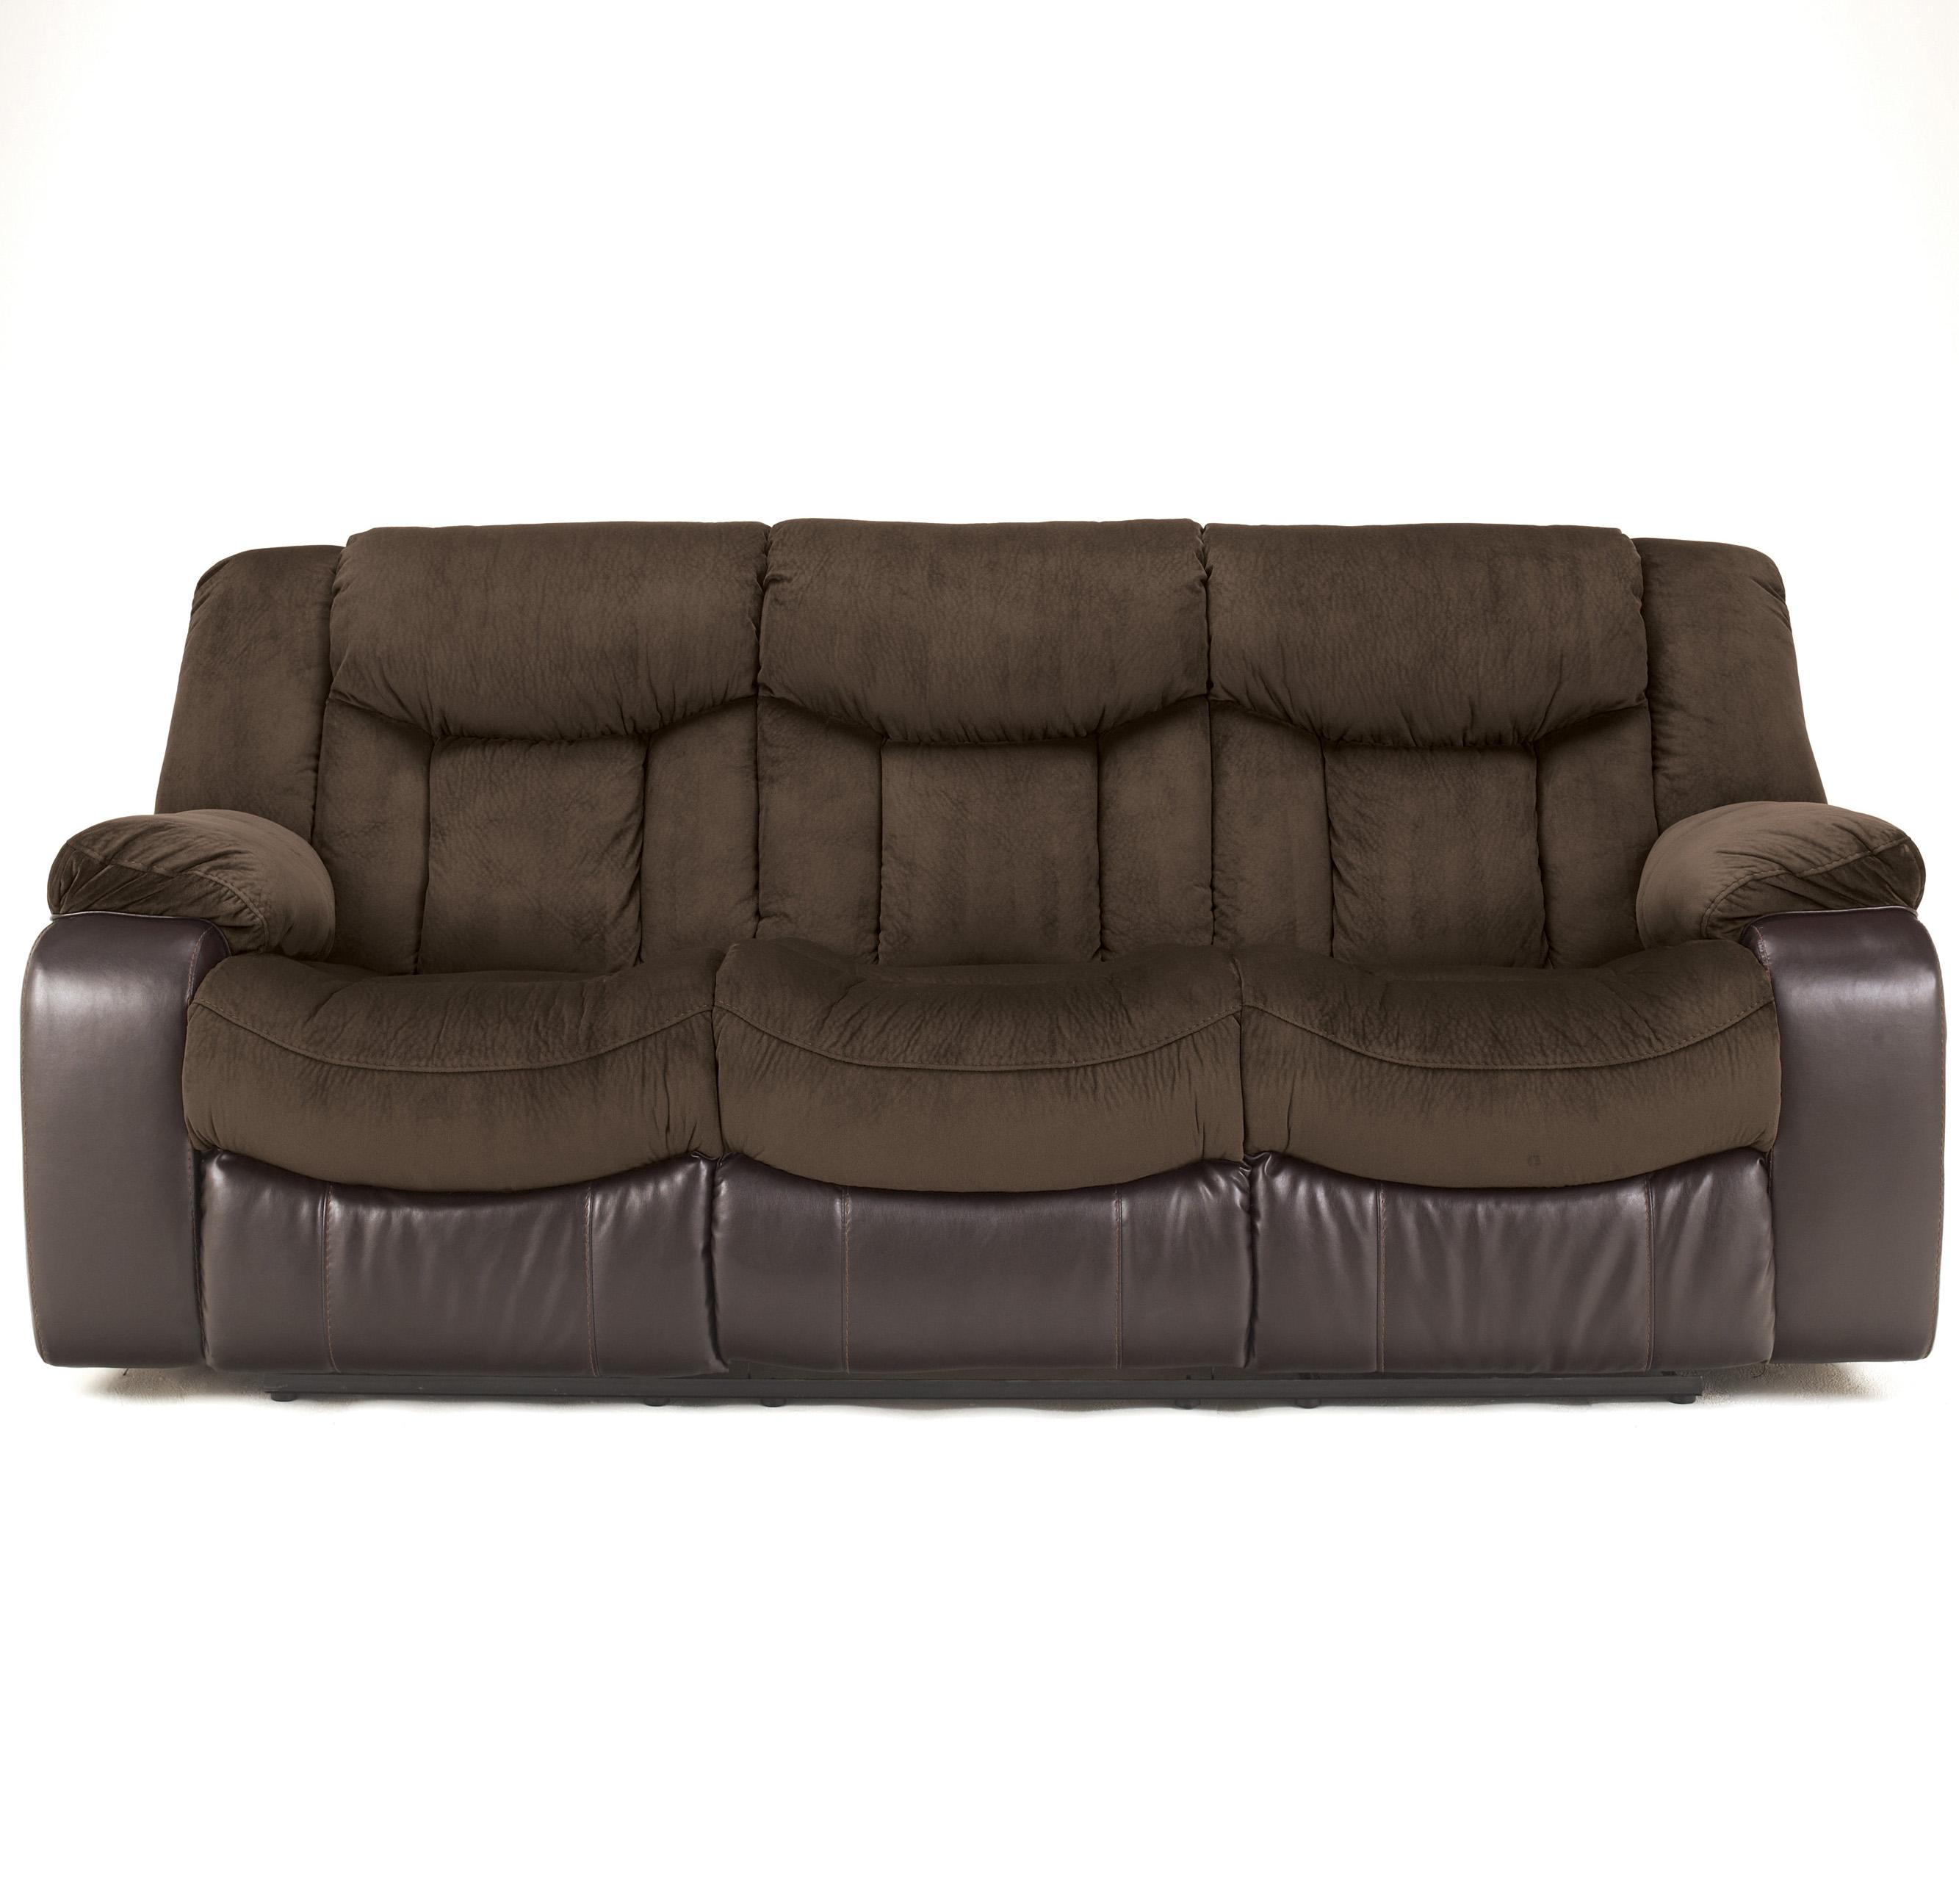 Signature Design By Ashley Tafton Java 7920288 Contemporary Reclining Sofa Household